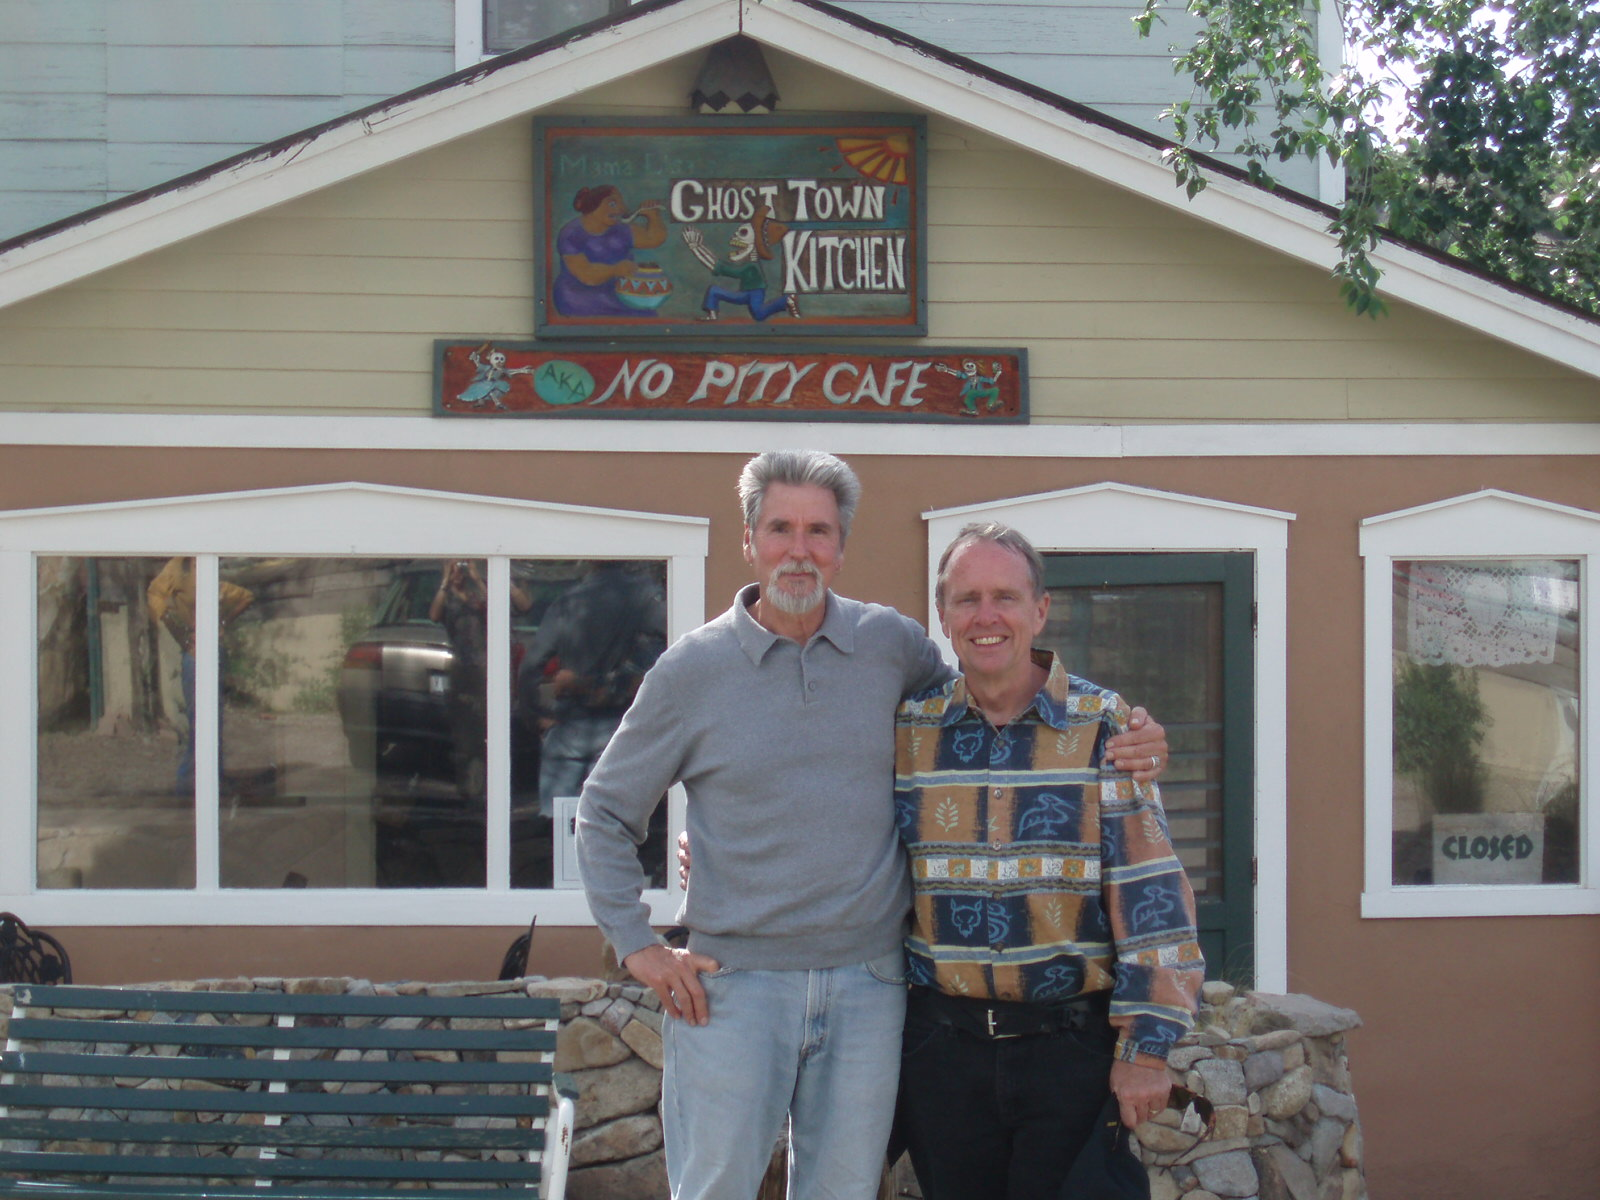 Joe Brennan and Don Hynes – thinking of Tom Thurber in New Mexico